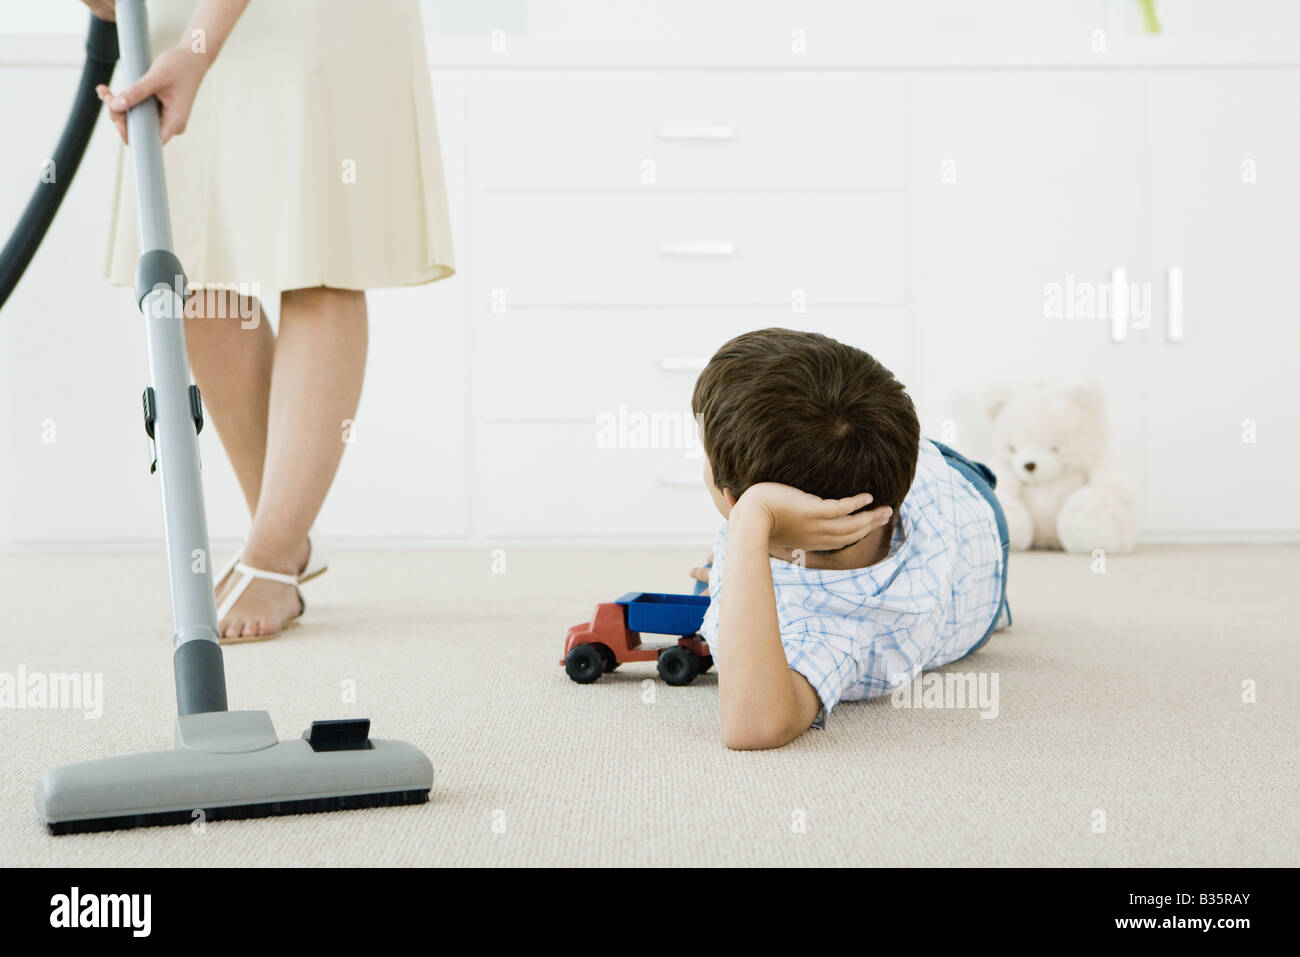 Boy lying on the ground with toys, looking up at his mother vacuuming around him - Stock Image